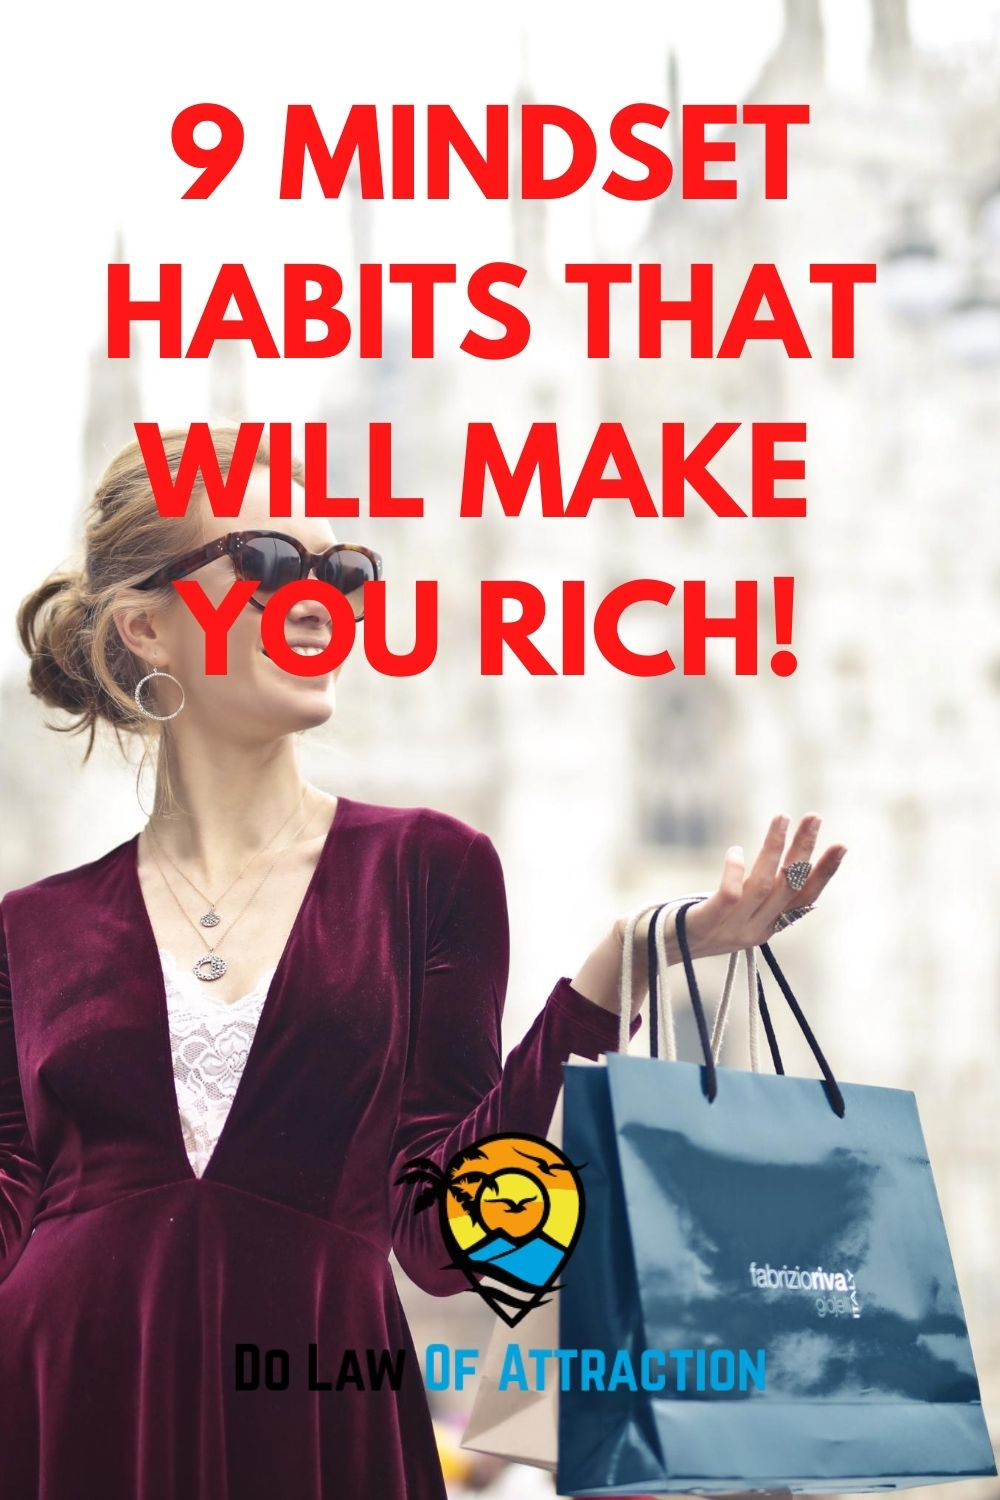 mindset habits that will make you rich!